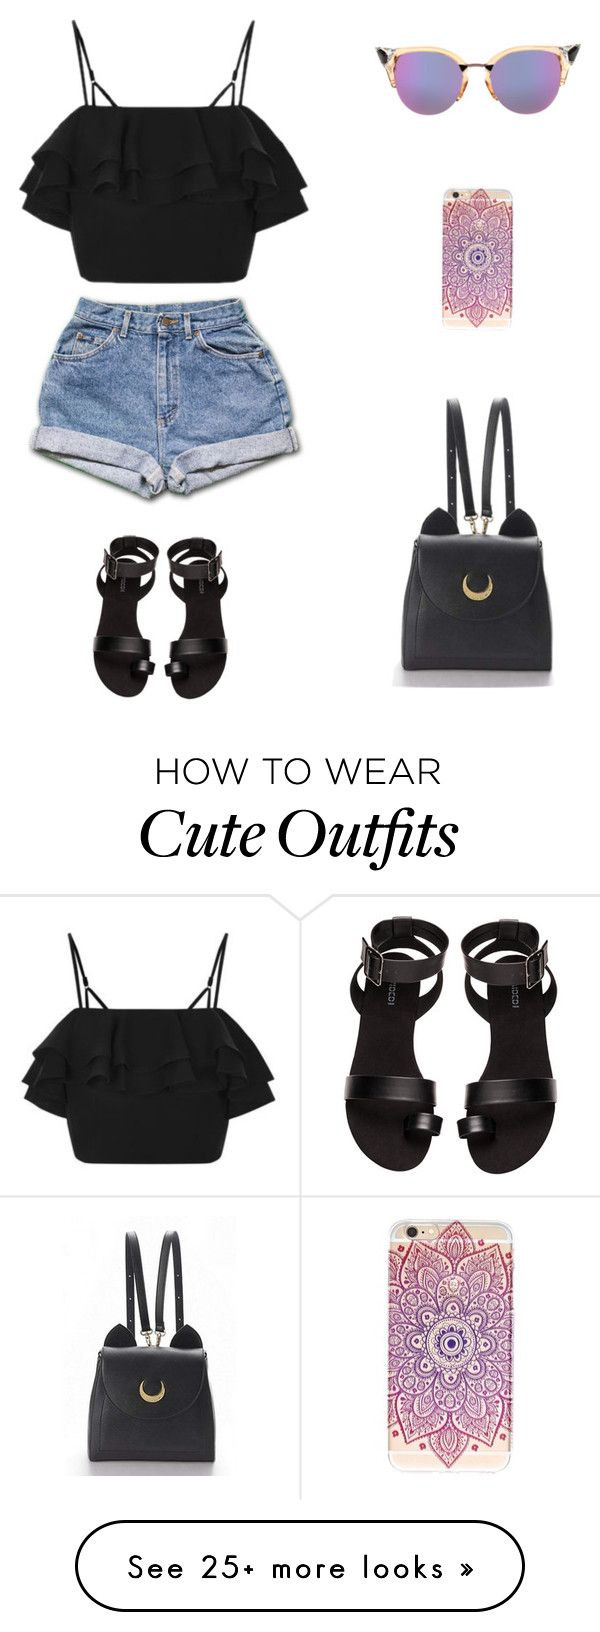 """Cute outfit"" by snhollick on Polyvore featuring Topshop, Fendi and H&M"